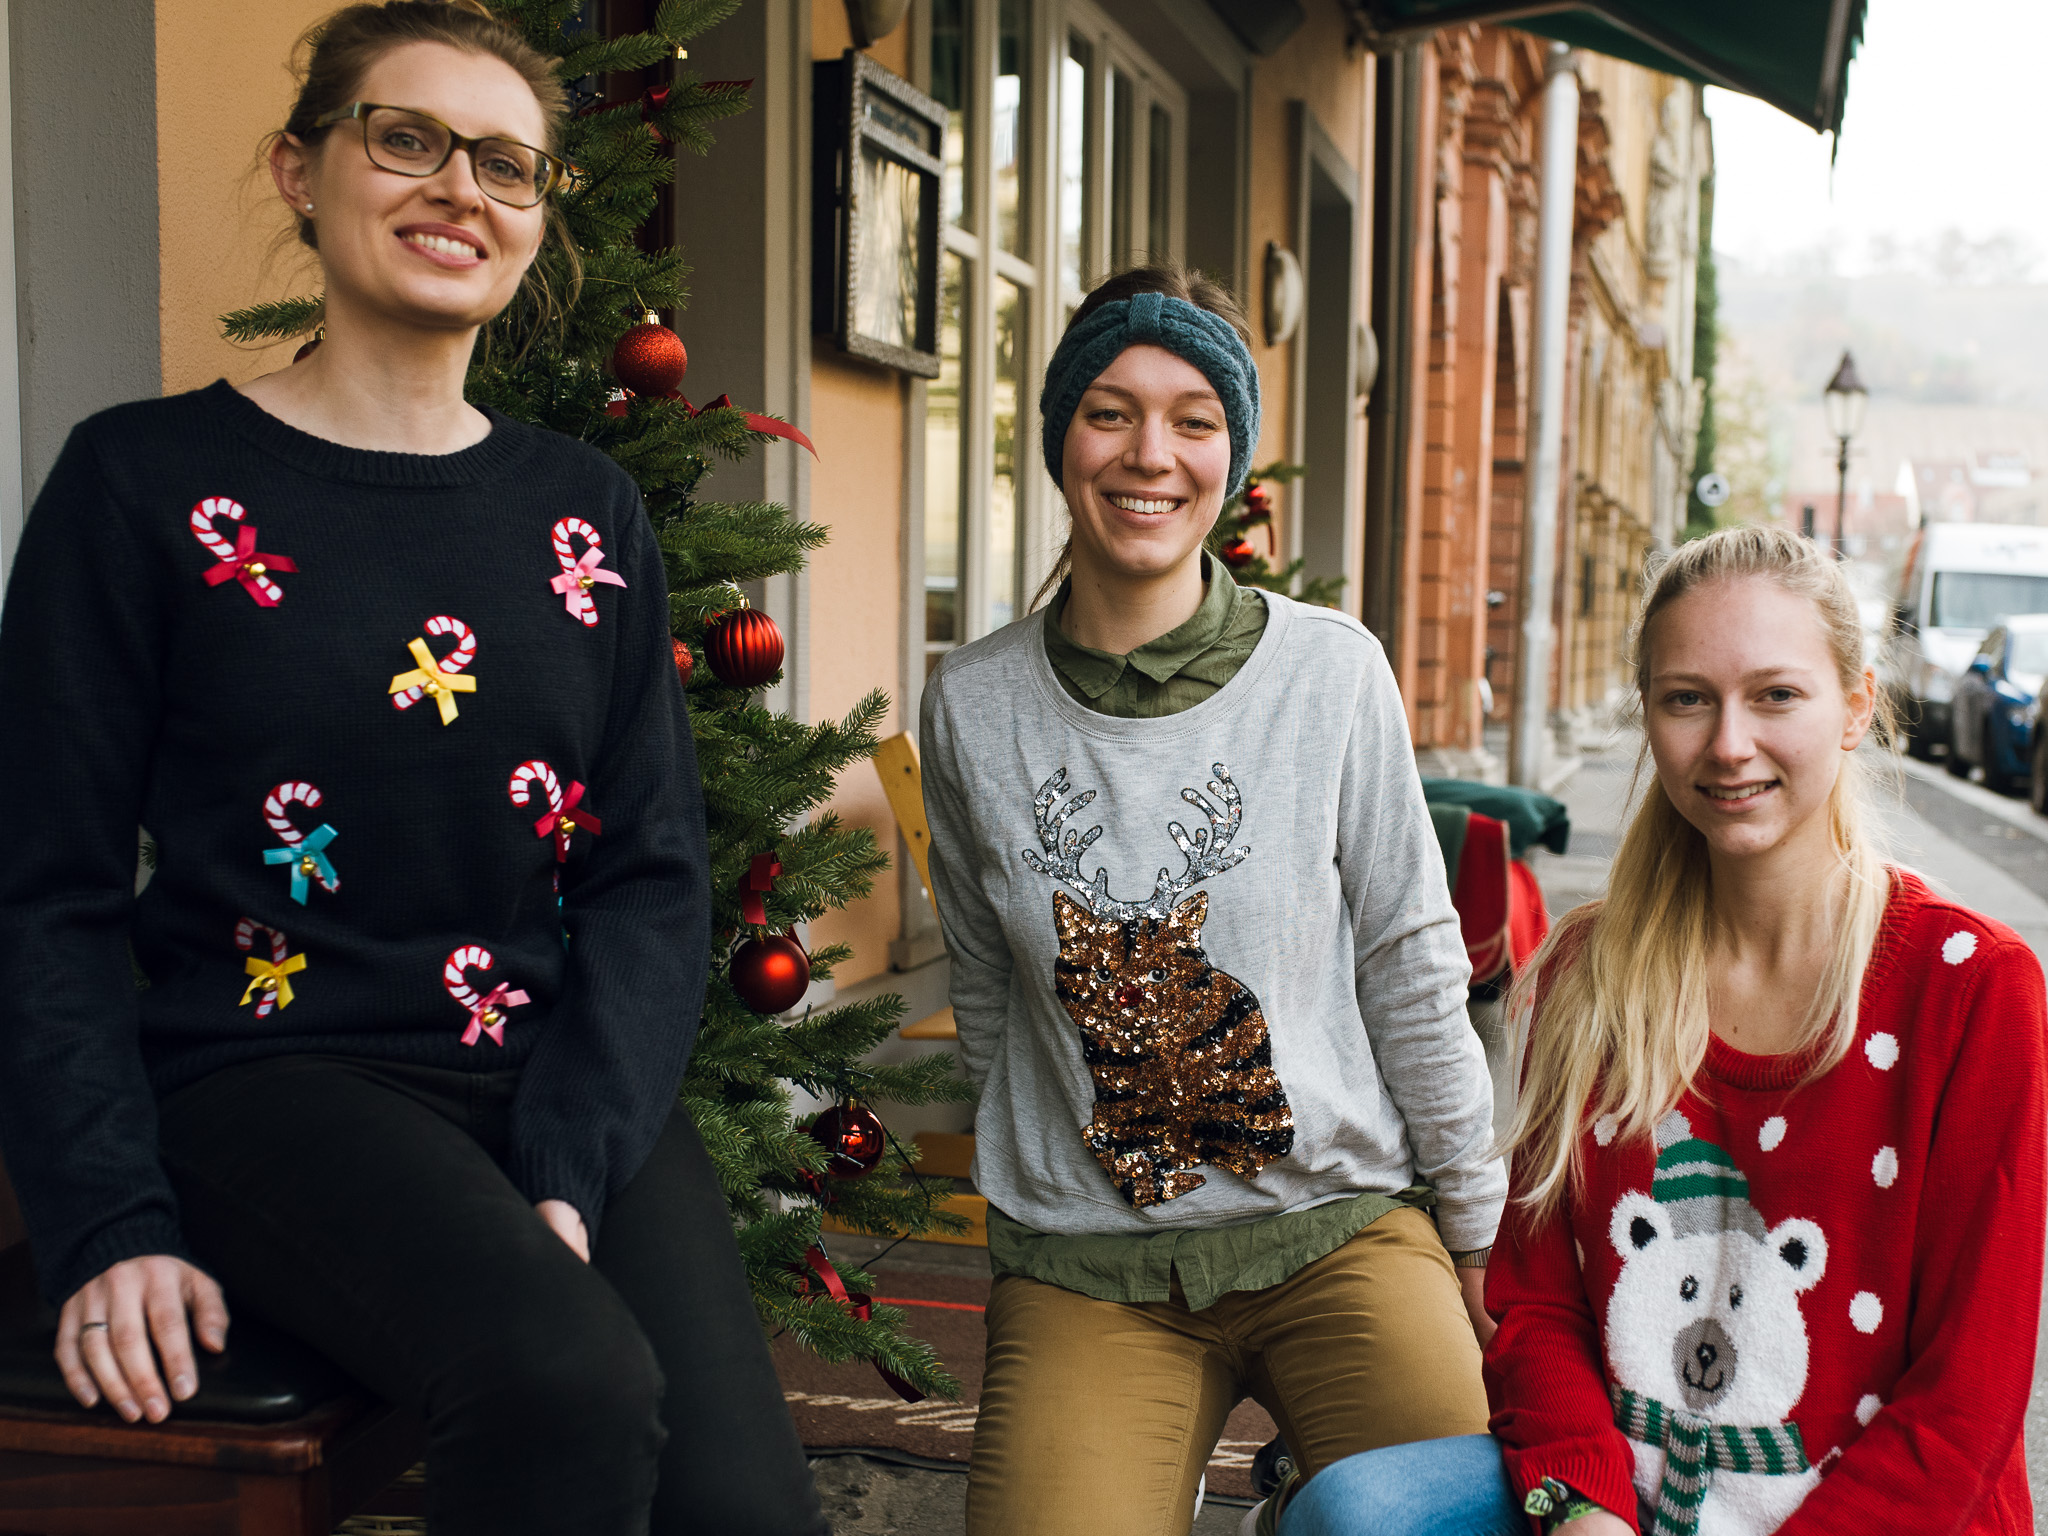 Sind die Ugly Christmas Sweater wirklich so ugly? Foto: Pascal Höfig